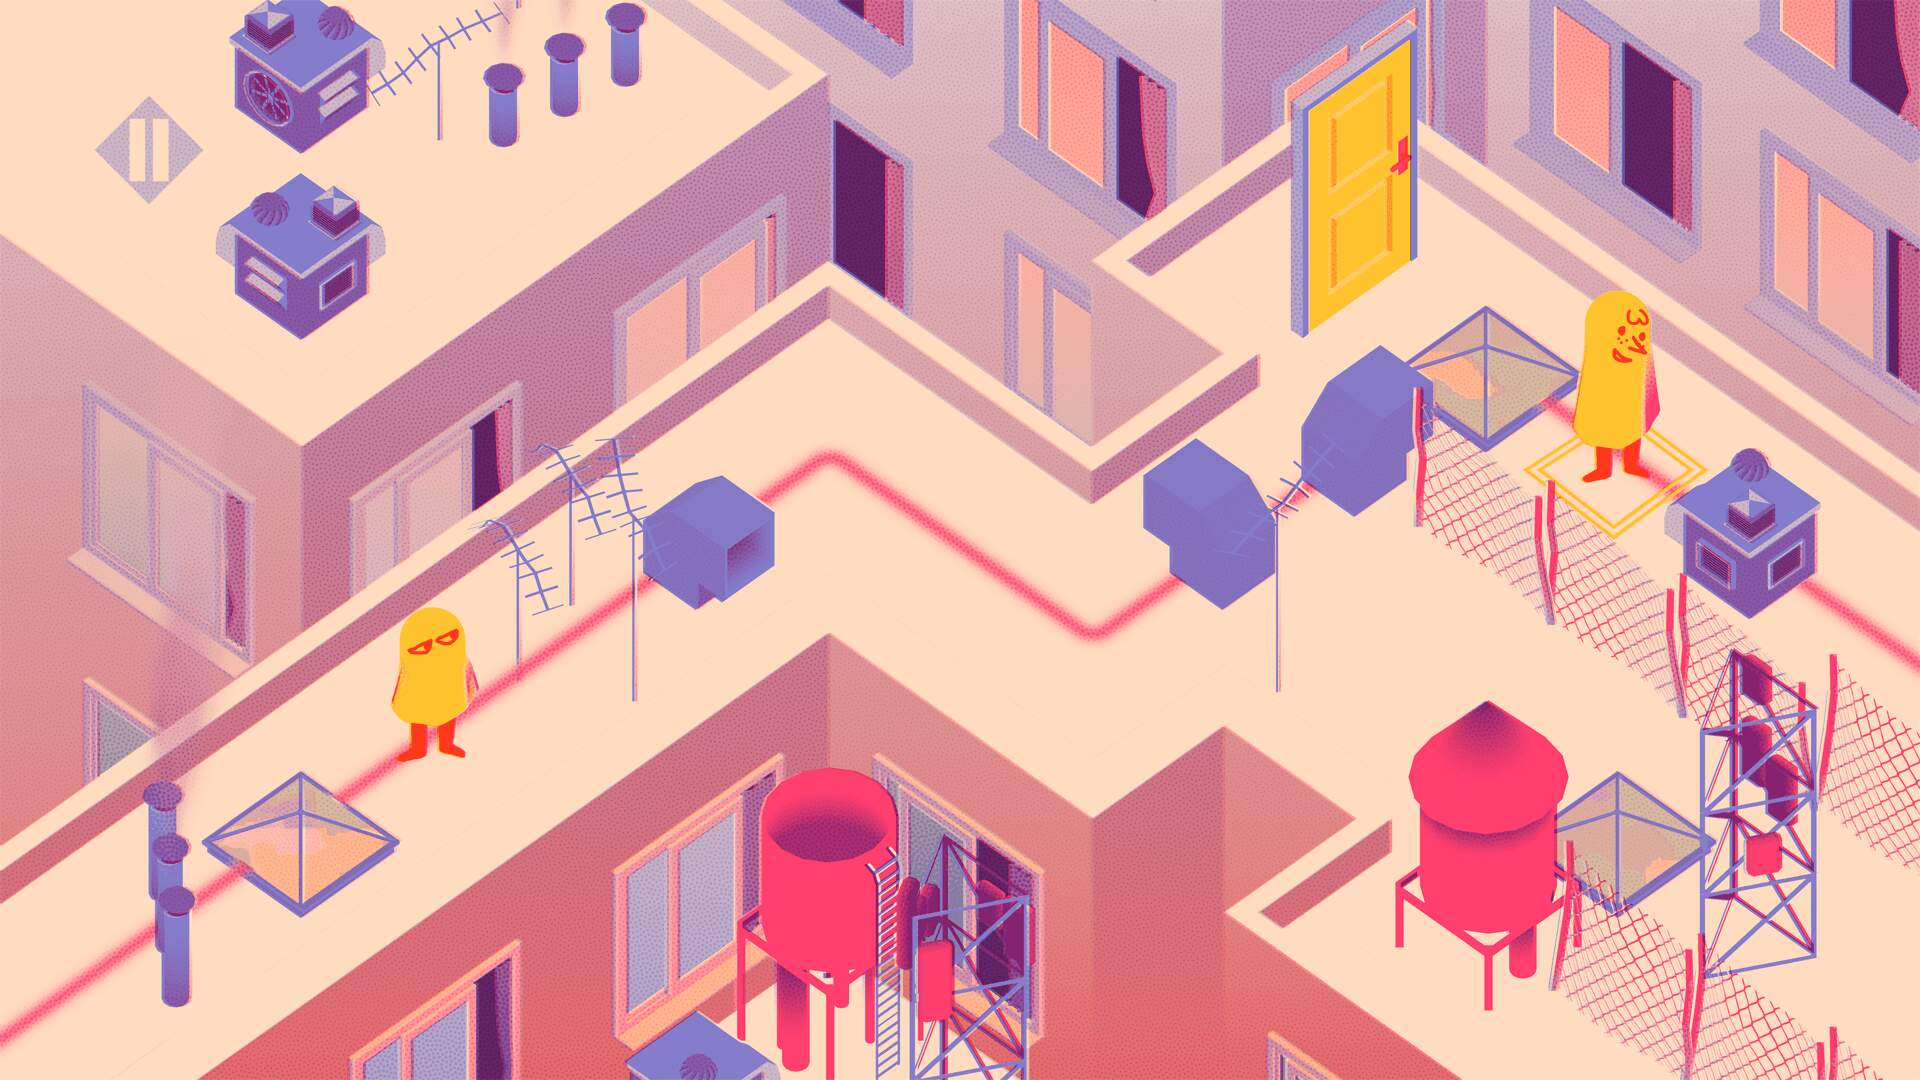 The Other Side is a Meditative Mobile Puzzle Game for Anxious Times